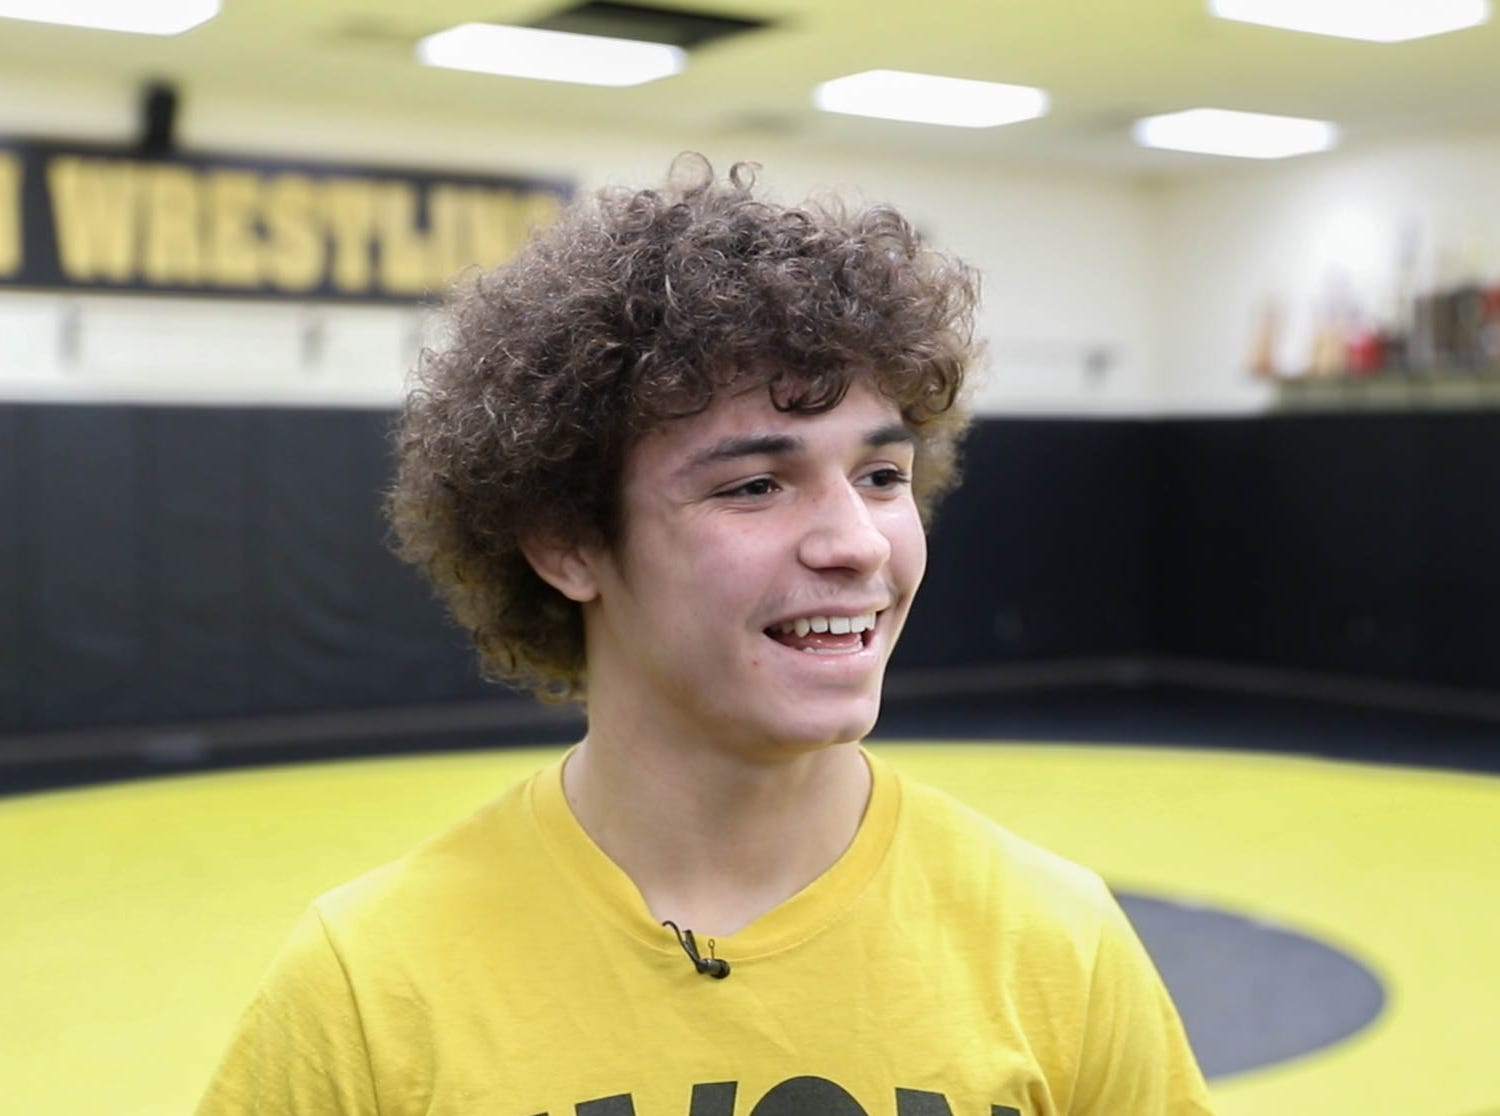 Avon wrestlers Asa Garcia is interviewed during a team practice in the wrestling room at Avon High School, on Monday, Jan. 11, 2019. Asa Garcia, an Avon H.S. senior and two-time state wrestling champ is chasing his third state title.